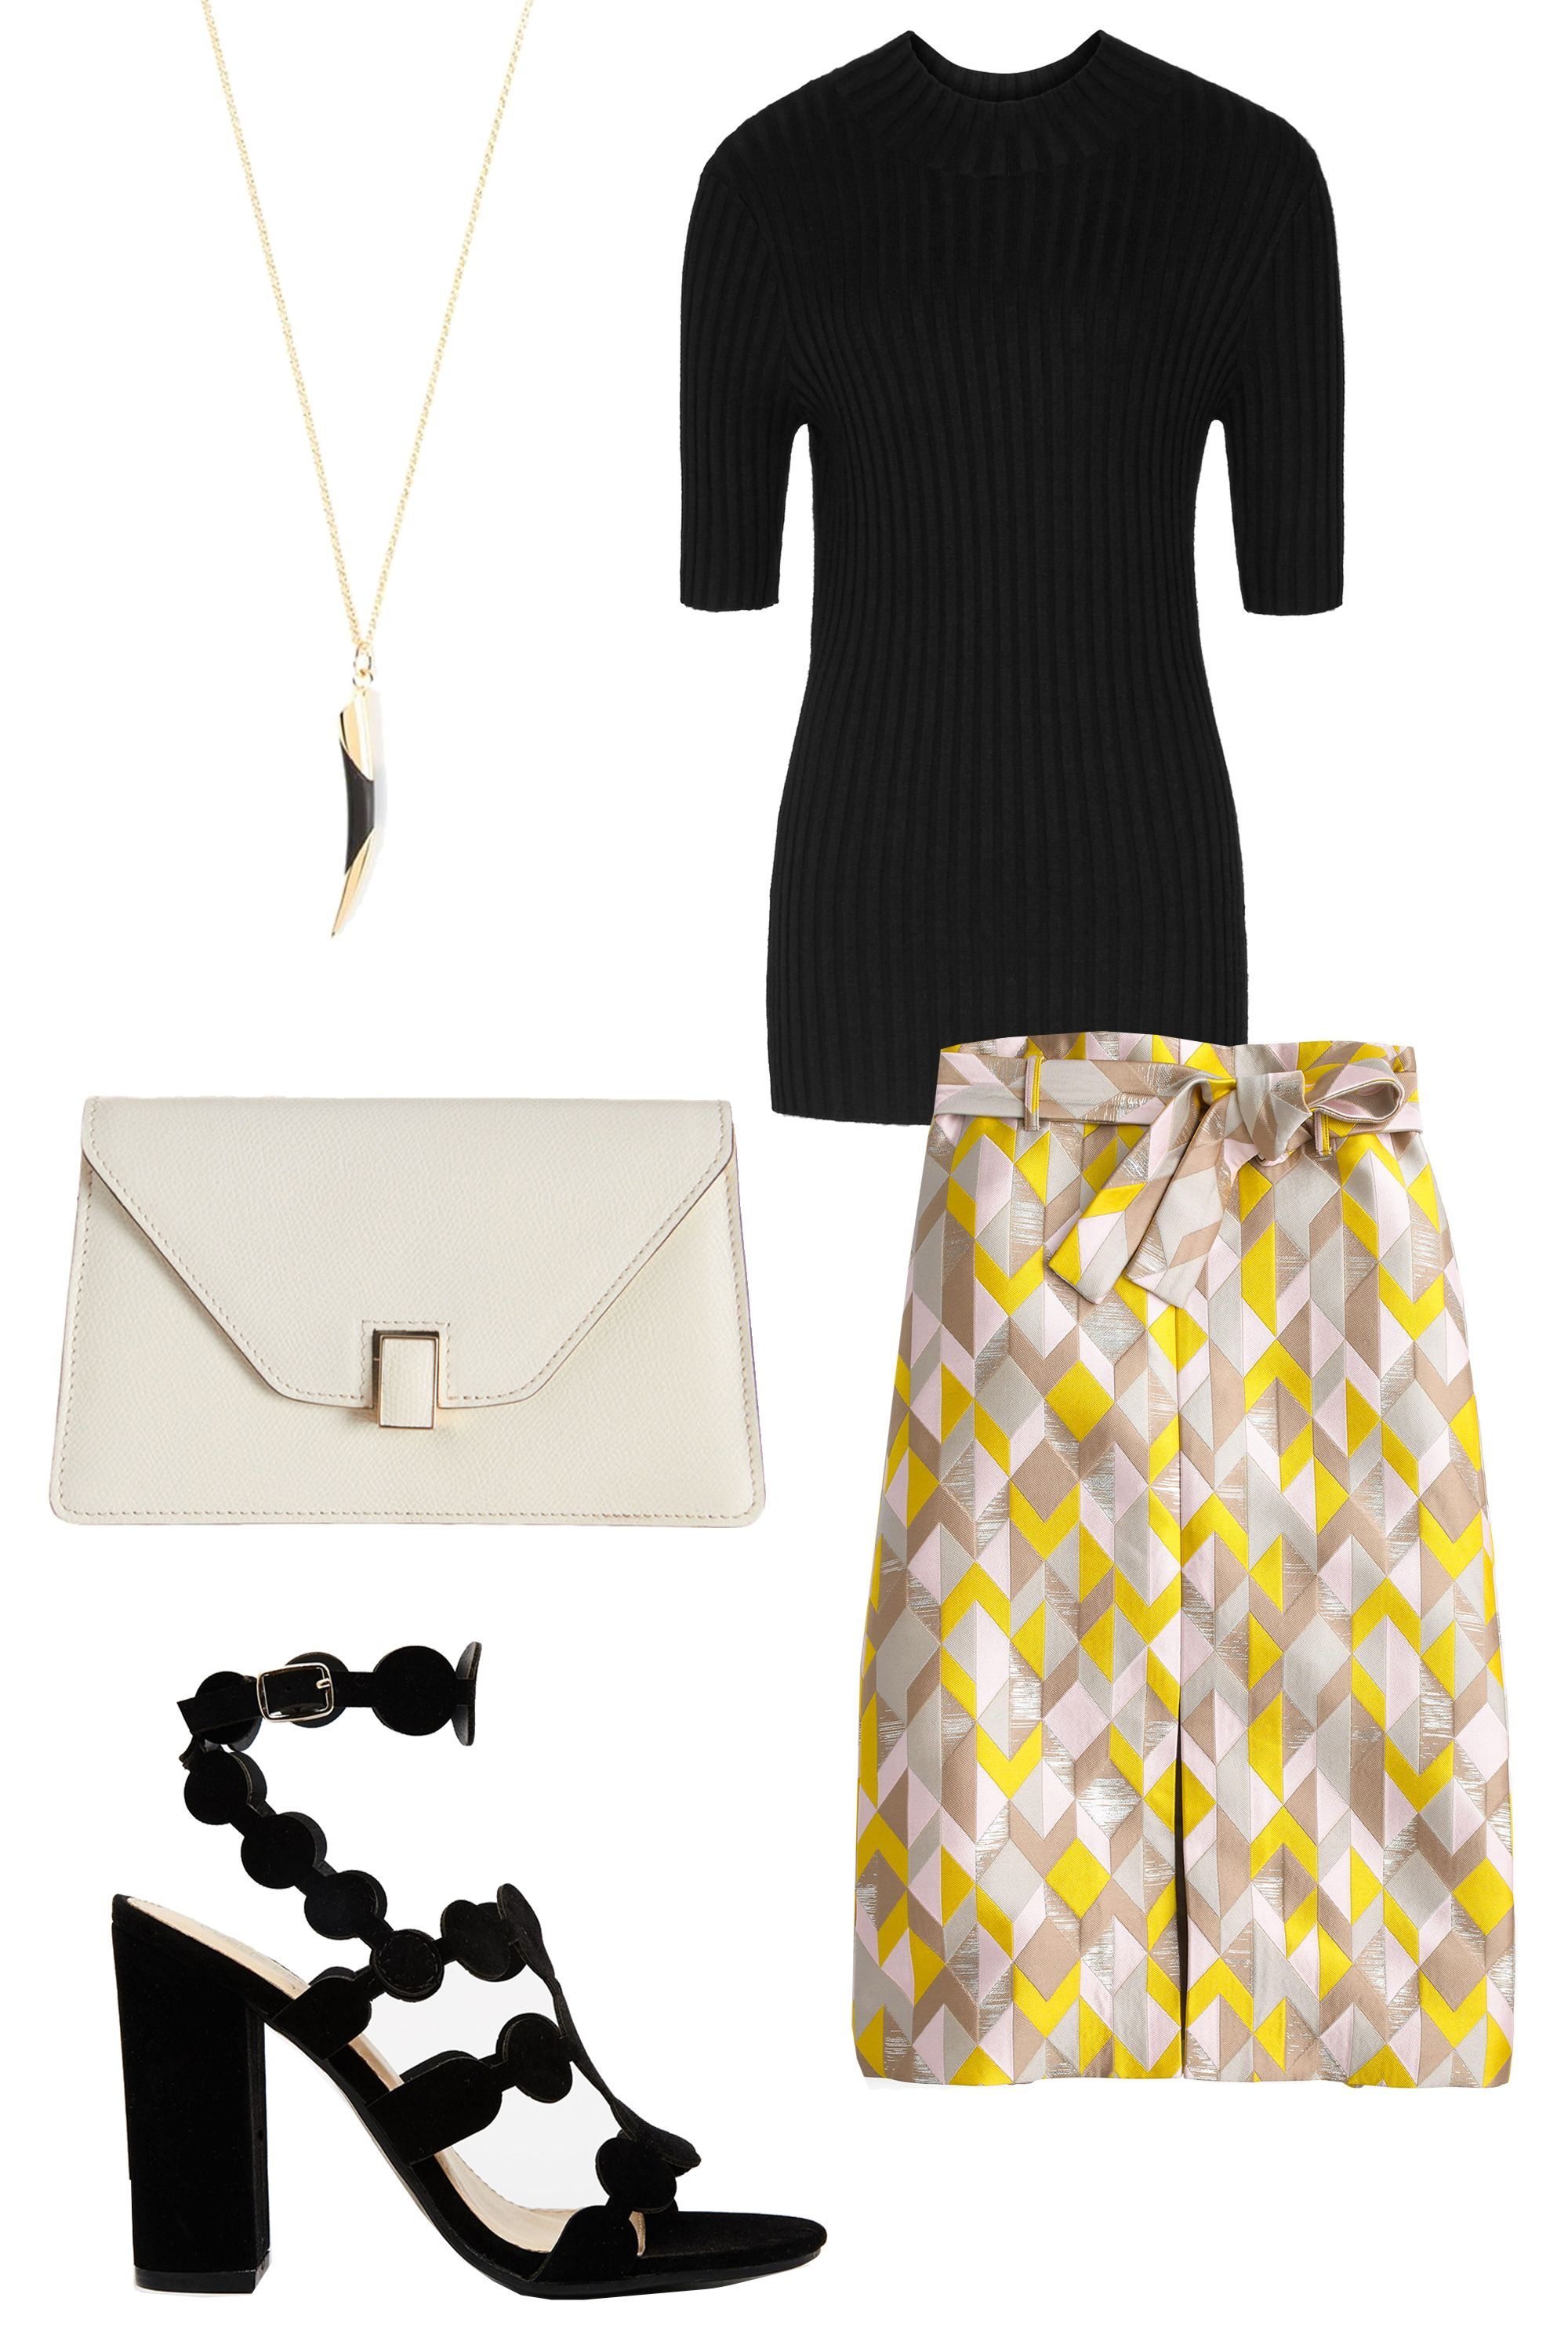 "<p>Work in a creative office environment? Try a simple black top and bold skirt that would happen to fit in at a lounge as well.</p><p>J.Crew Collection Chevron Jacquard Skirt, $395; <a href=""https://www.jcrew.com/womens_category/Collection/skirtsshorts/PRDOVR~E3179/E3179.jsp"" target=""_blank""><u>jcrew.com</u></a></p><p>Reese High-Neck Ribbed Jumper, $170; <a href=""https://www.reiss.com/us/p/highneck-ribbed-jumper-womens-chambers-in-black/?category_id=1122"" target=""_blank""><u>reiss.com</u></a></p><p>Valextra Isis Gioello Mini Clutch, $1,350; <a href=""http://www.barneys.com/valextra-isis-gioiello-mini-clutch-501686870.html#prefn1=productAccess&sz=96&prefv1=isPublic&pageviewchange=true&start=6"" target=""_blank""><u>barneys.com</u></a></p><p>Public Desire Farah Black Heeled Sandals, $54; <a href=""http://us.asos.com/Public-Desire-Farah-Black-Heeled-Sandals/18cre0/?iid=6061067&cid=6461&sh=0&pge=0&pgesize=36&sort=-1&clr=Black&totalstyles=714&gridsize=3&mporgp=L1B1YmxpYy1EZXNpcmUvUHVibGljLURlc2lyZS1GYXJhaC1CbGFjay1IZWVsZWQtU2FuZGFscy9Qcm9kLw.."" target=""_blank""><u>asos.com</u></a></p><p>Maiyet Horn Tip Necklace, $551; <a href=""http://www.farfetch.com/shopping/women/Maiyet-horn-tip-necklace-item-10758770.aspx?gclid=CKWMx6ya4MkCFcRlfgodjNQLkA&fsb=1&ef_id=VgGCewAABd6-iguD:20151216104829:s"" target=""_blank""><u>farfetch.com</u></a></p>"